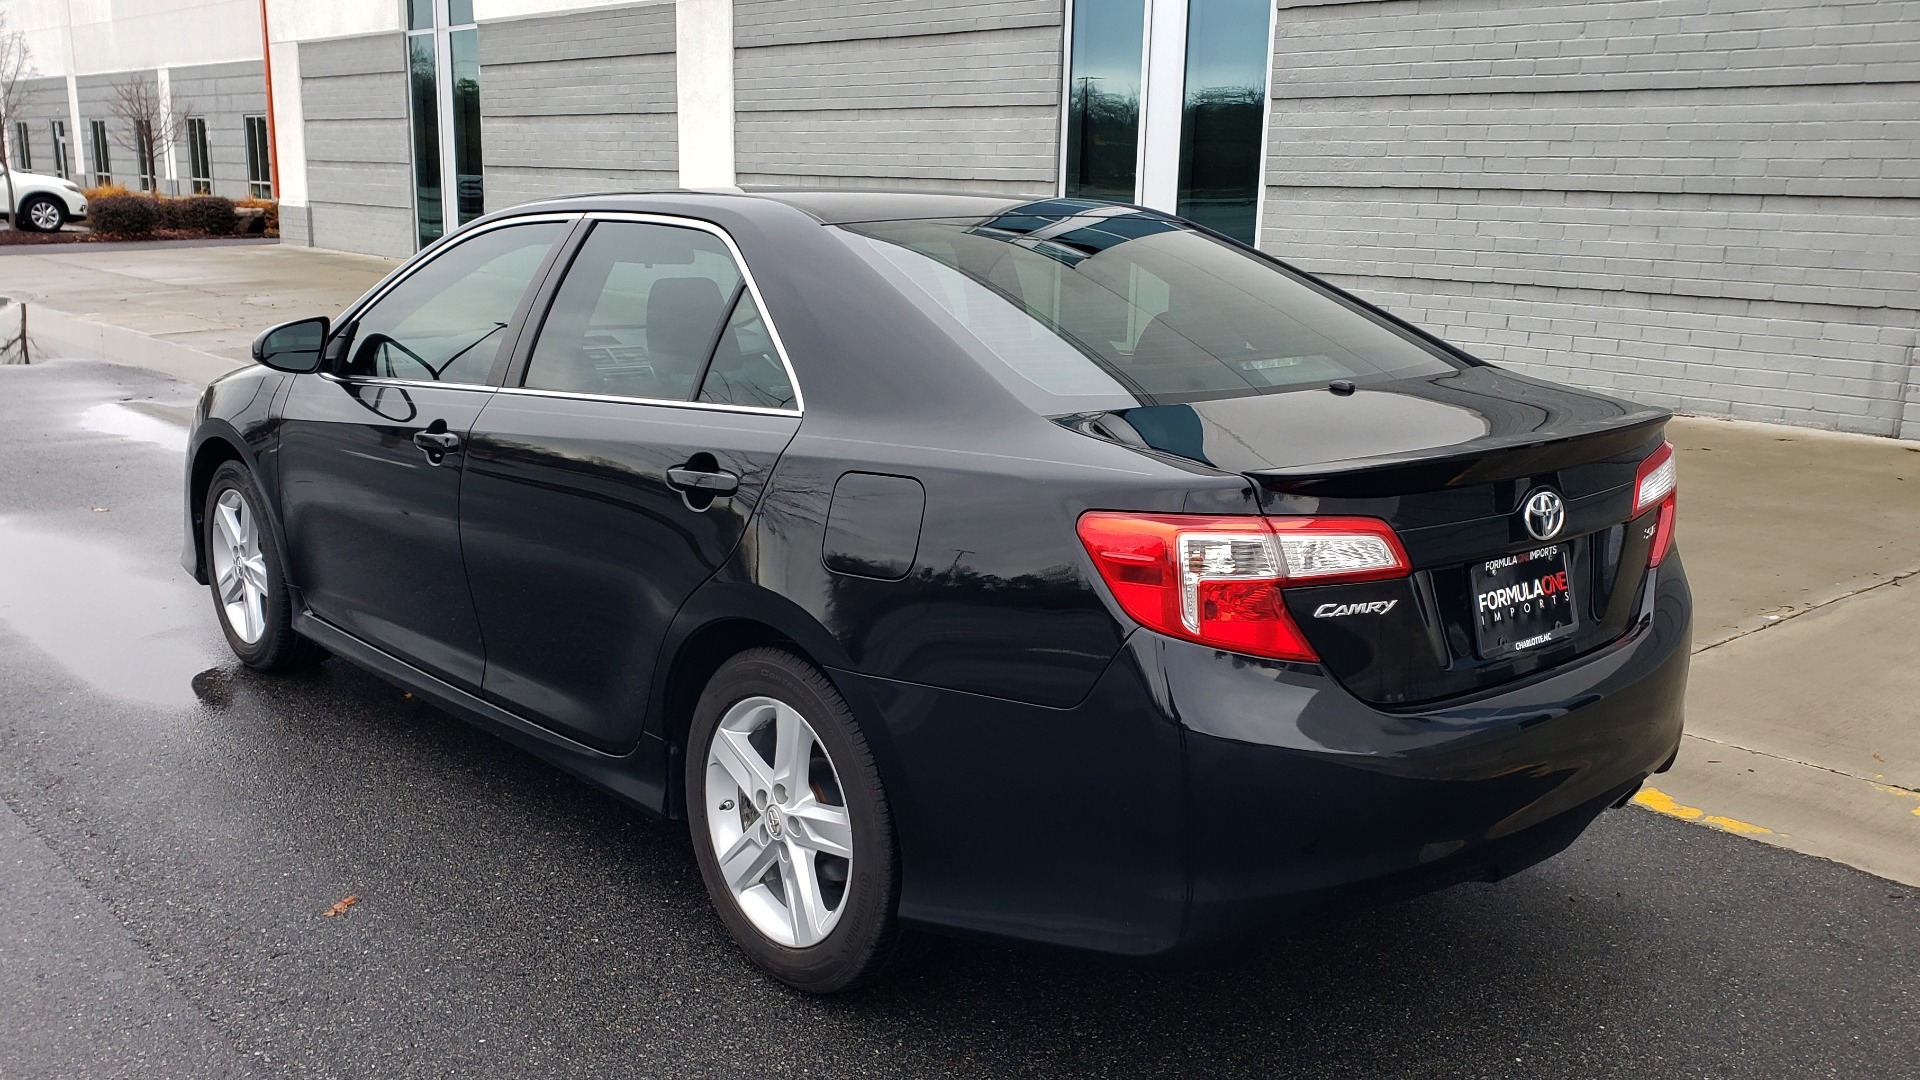 Used 2014 Toyota CAMRY SE SEDAN / 2.5L 4-CYL / 6-SPD AUTO / 17IN ALLOY WHEELS for sale $10,499 at Formula Imports in Charlotte NC 28227 3